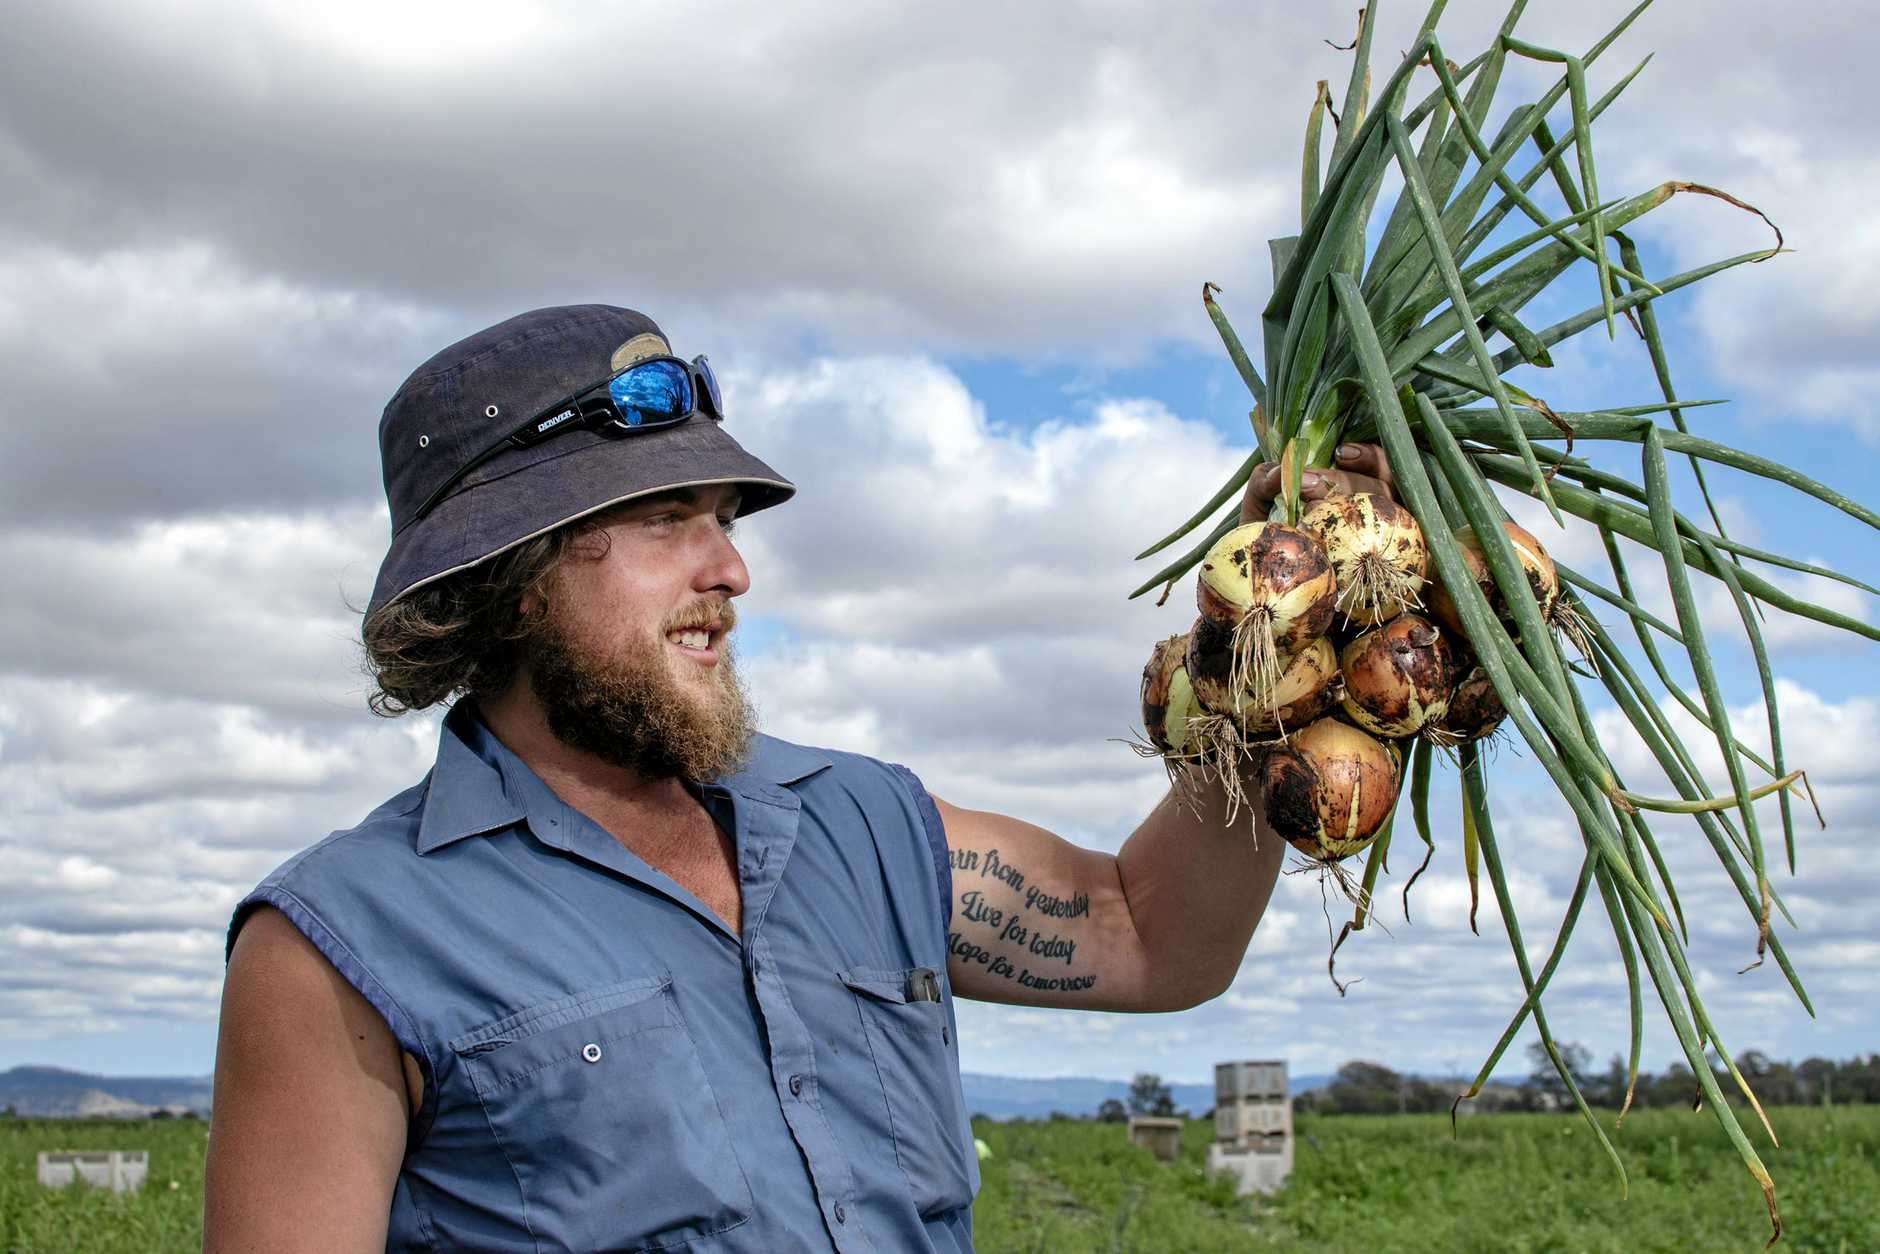 Andrew Mildren, Reck Farms, Lower Tent Hil, inspects some onions from the 2018 Winter season.